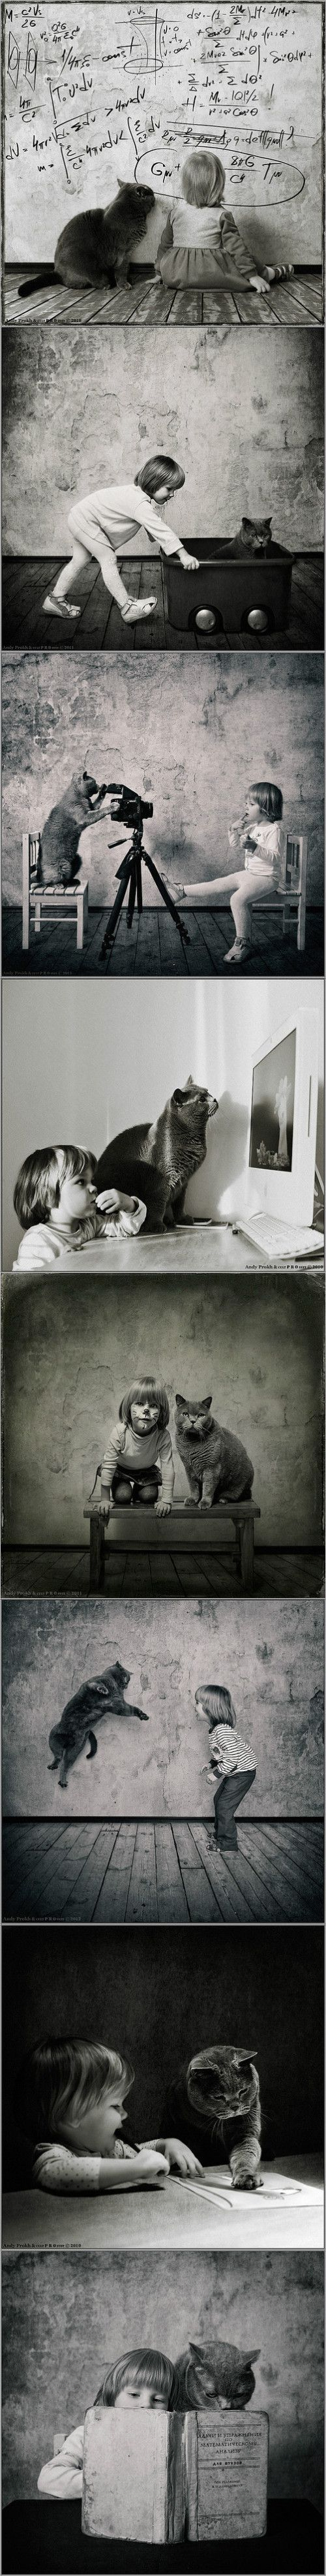 Once upon a time a cat had a girl and a girl had a cat...